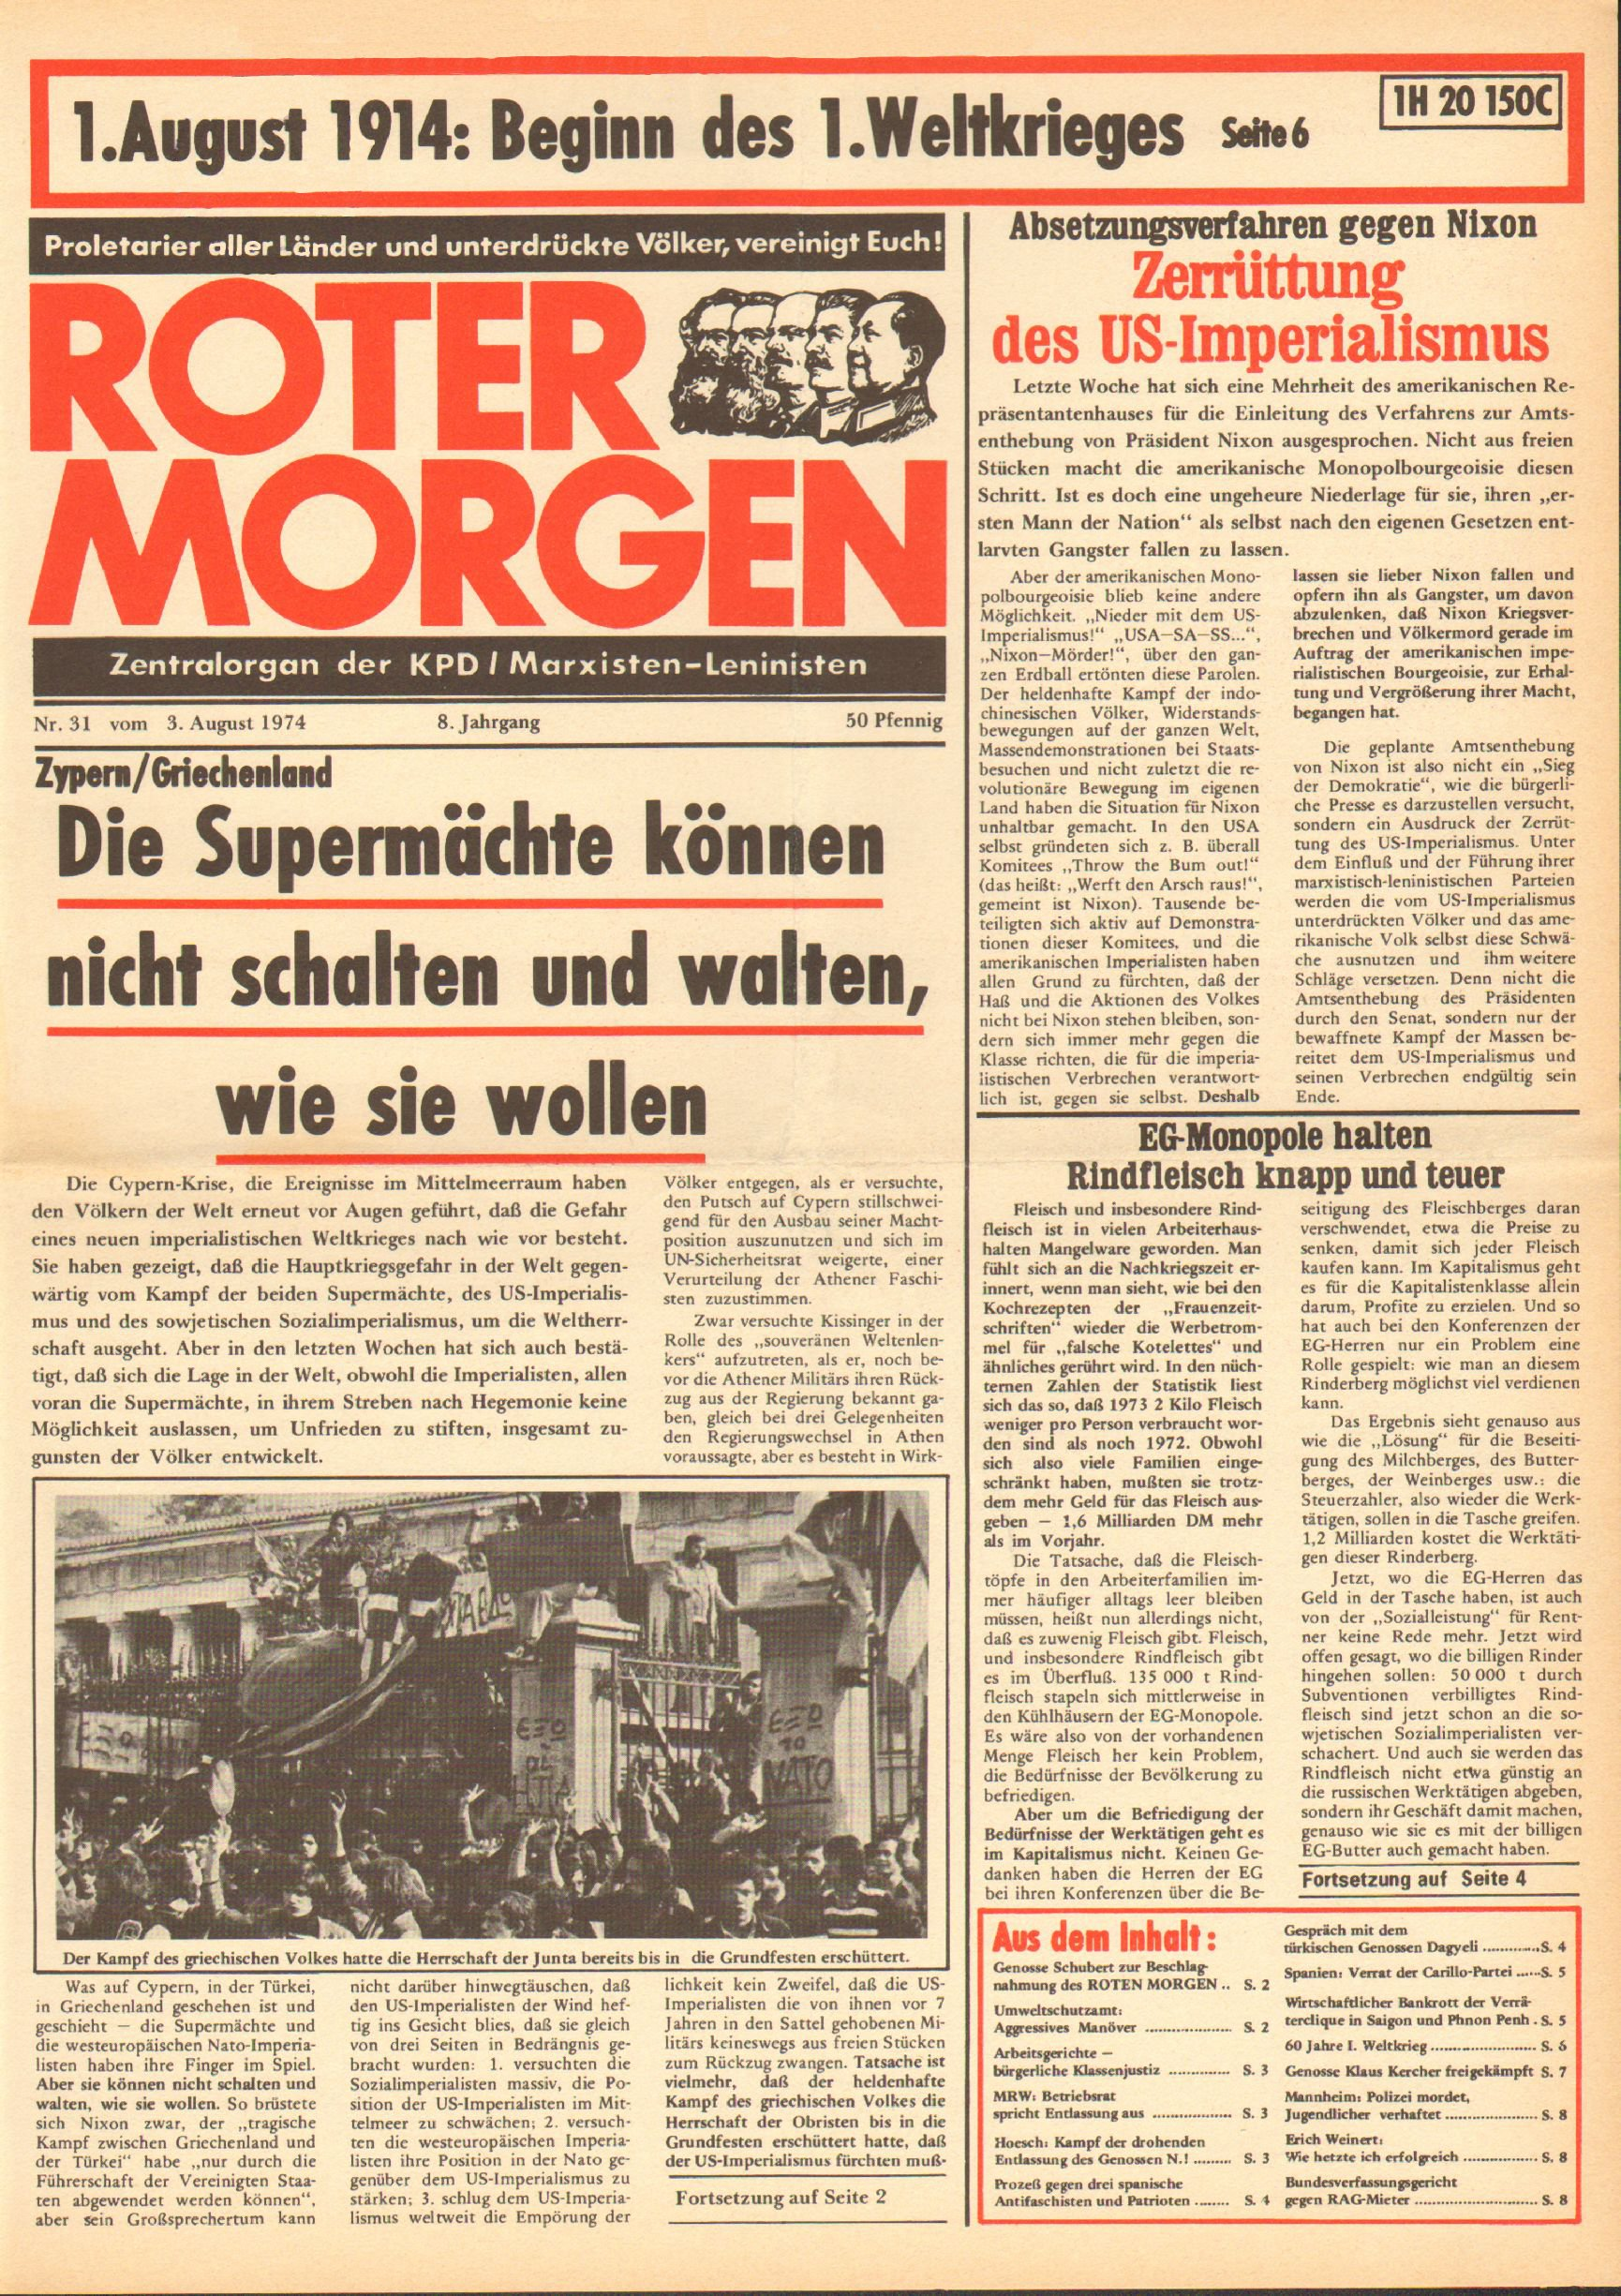 Roter Morgen, 8. Jg., 3. August 1974, Nr. 31, Seite 1